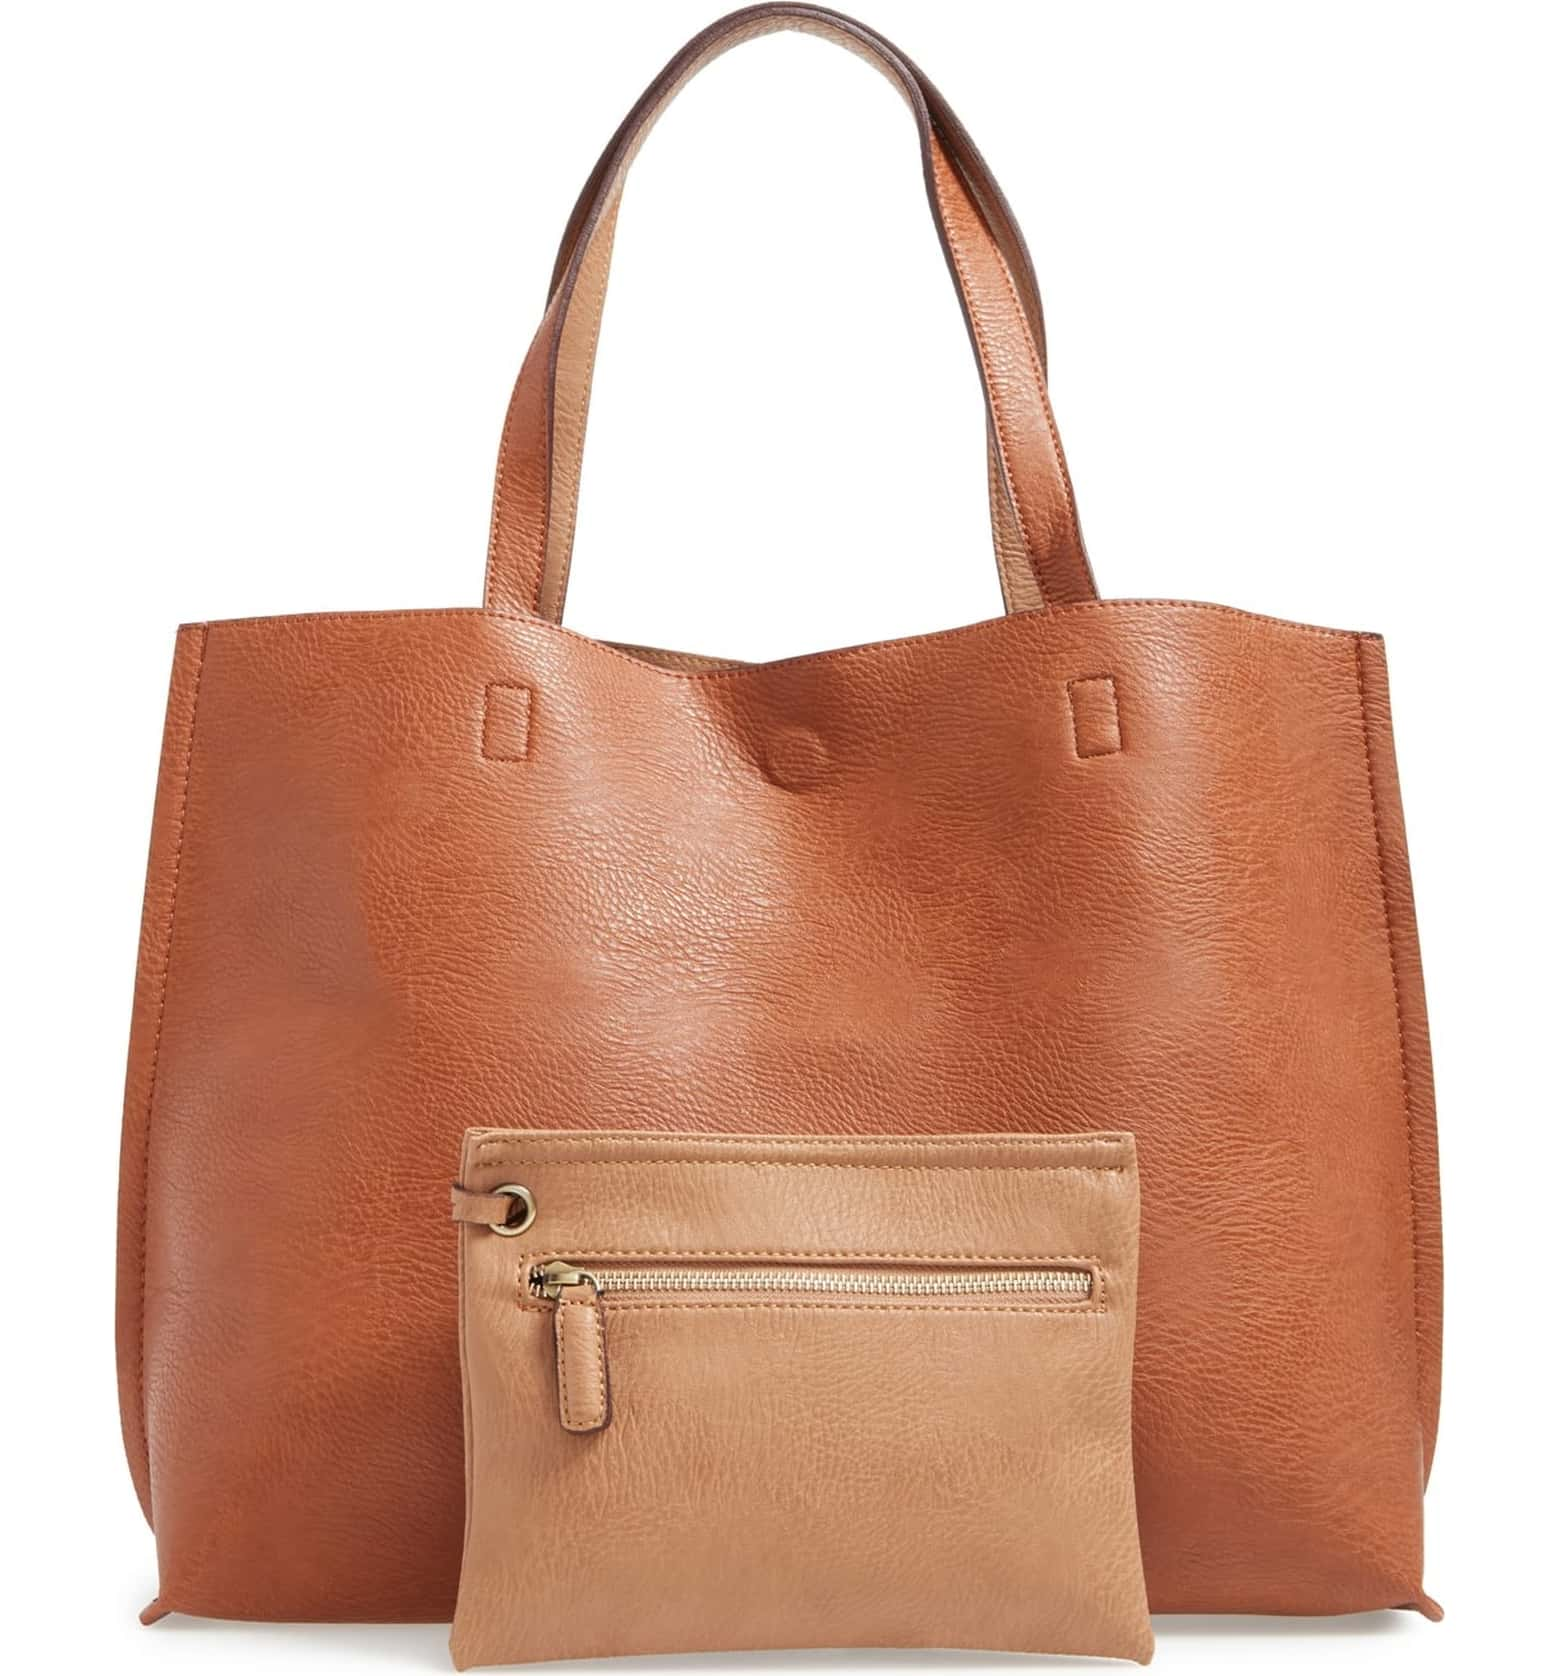 Nordstrom: Faux Leather Tote